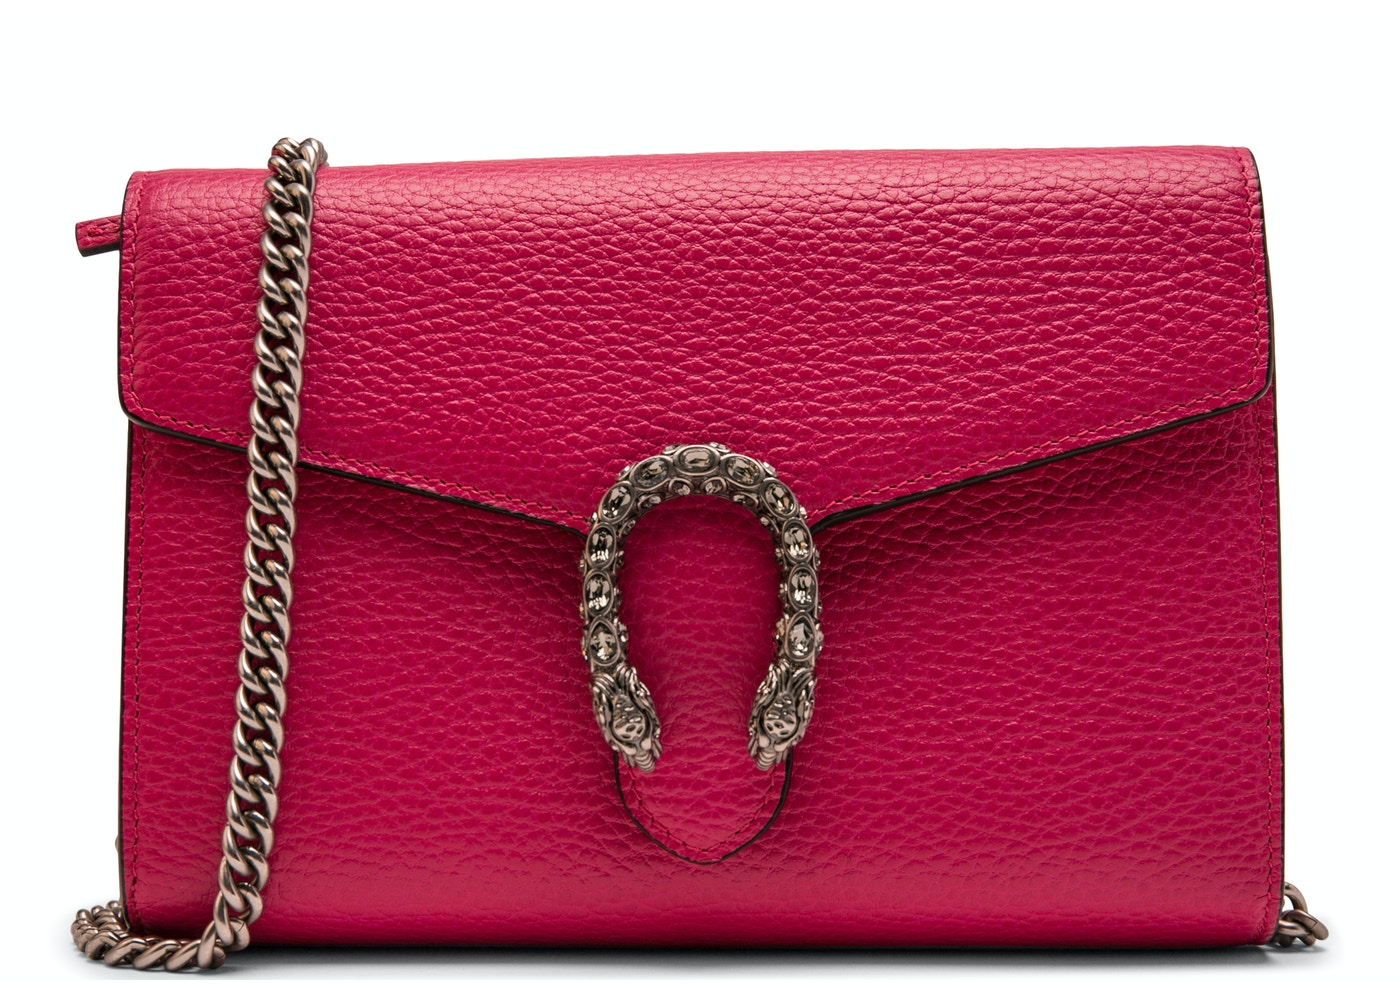 101de3e6bb4 Gucci Chain Wallet Embellished Small Fuchsia. Embellished Small Fuchsia